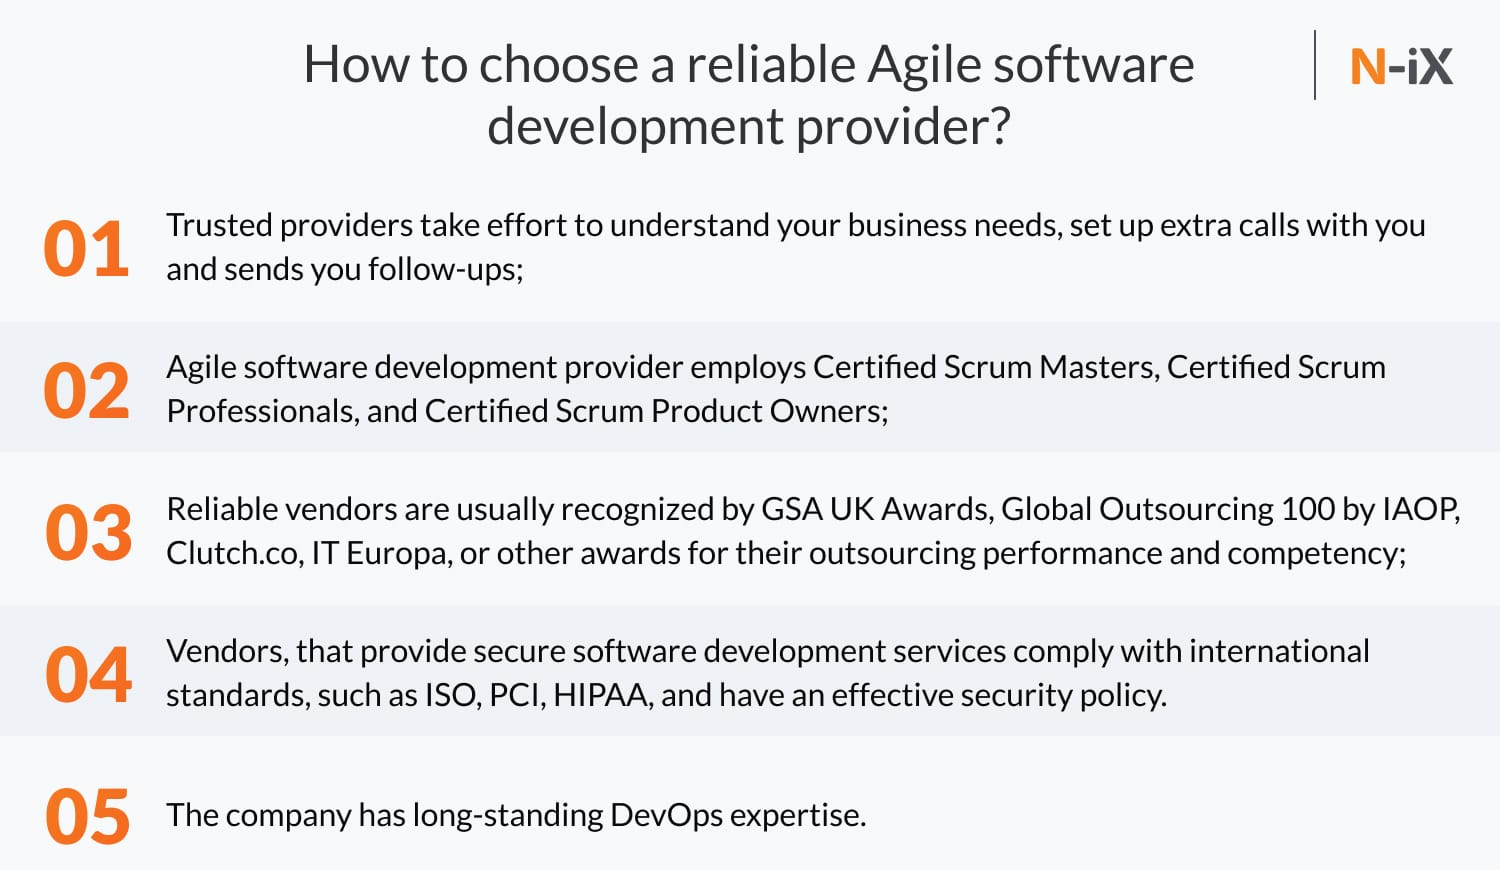 How to choose an Agile software development provider?